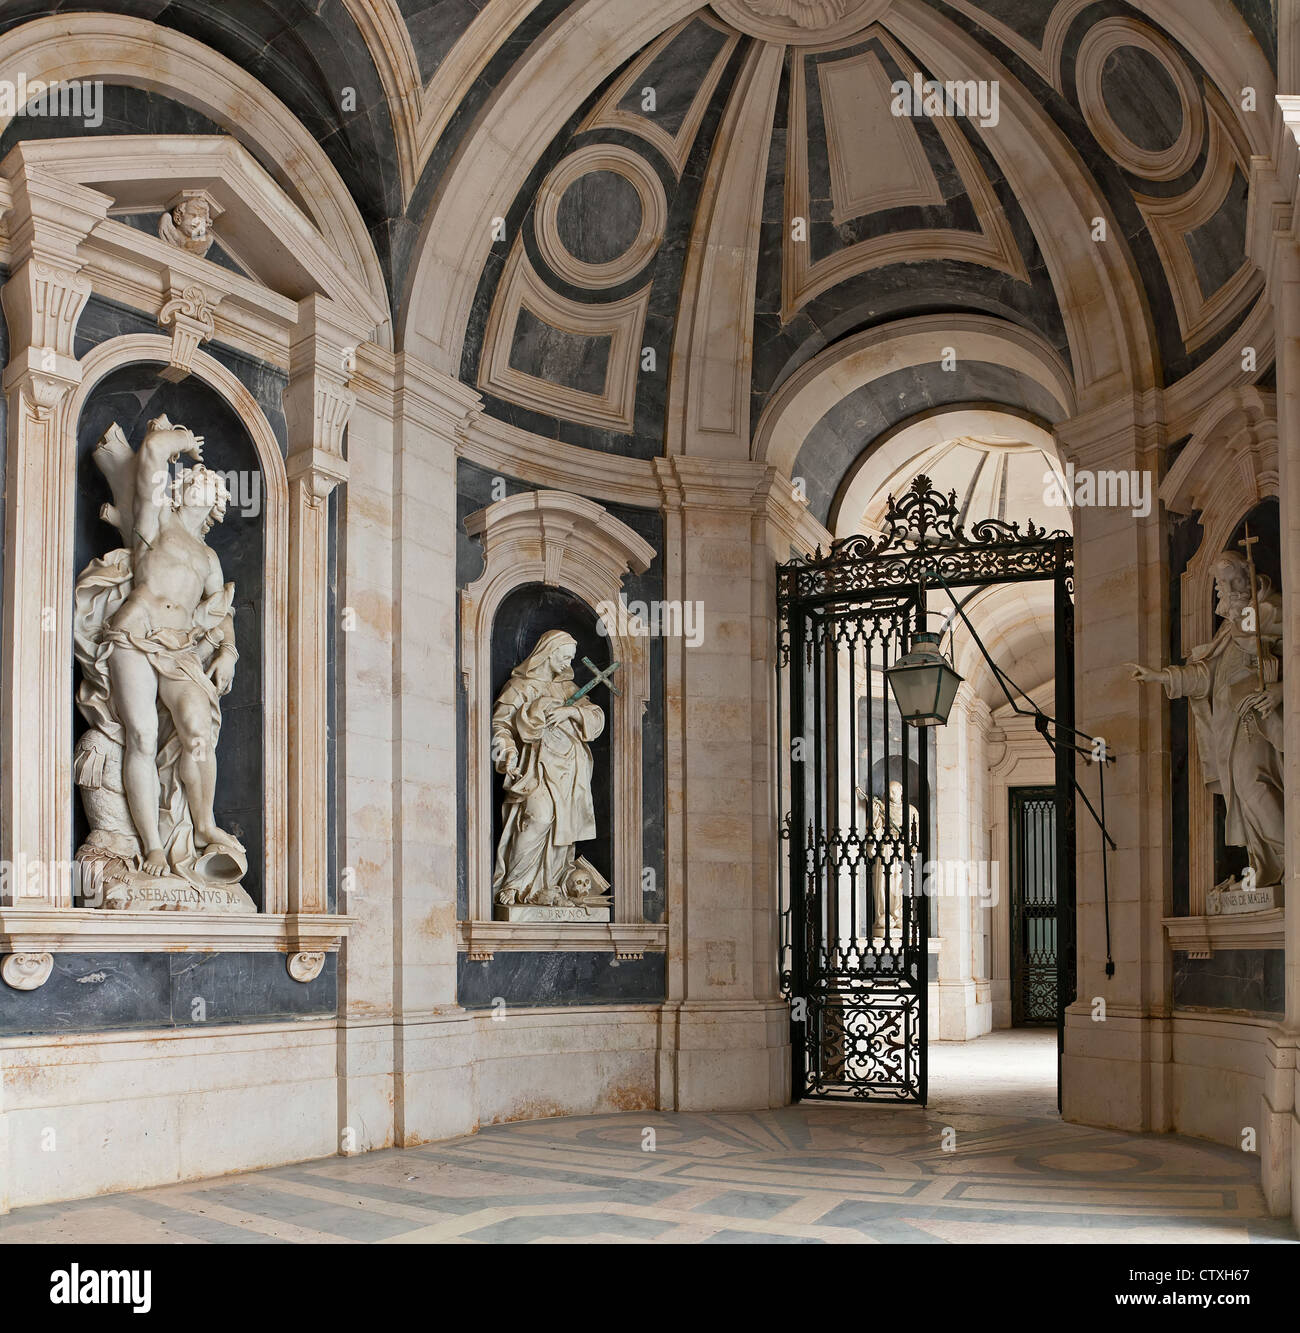 Italian Baroque Sculptures In Mafra National Palace And Convent Portugal Architecture Franciscan